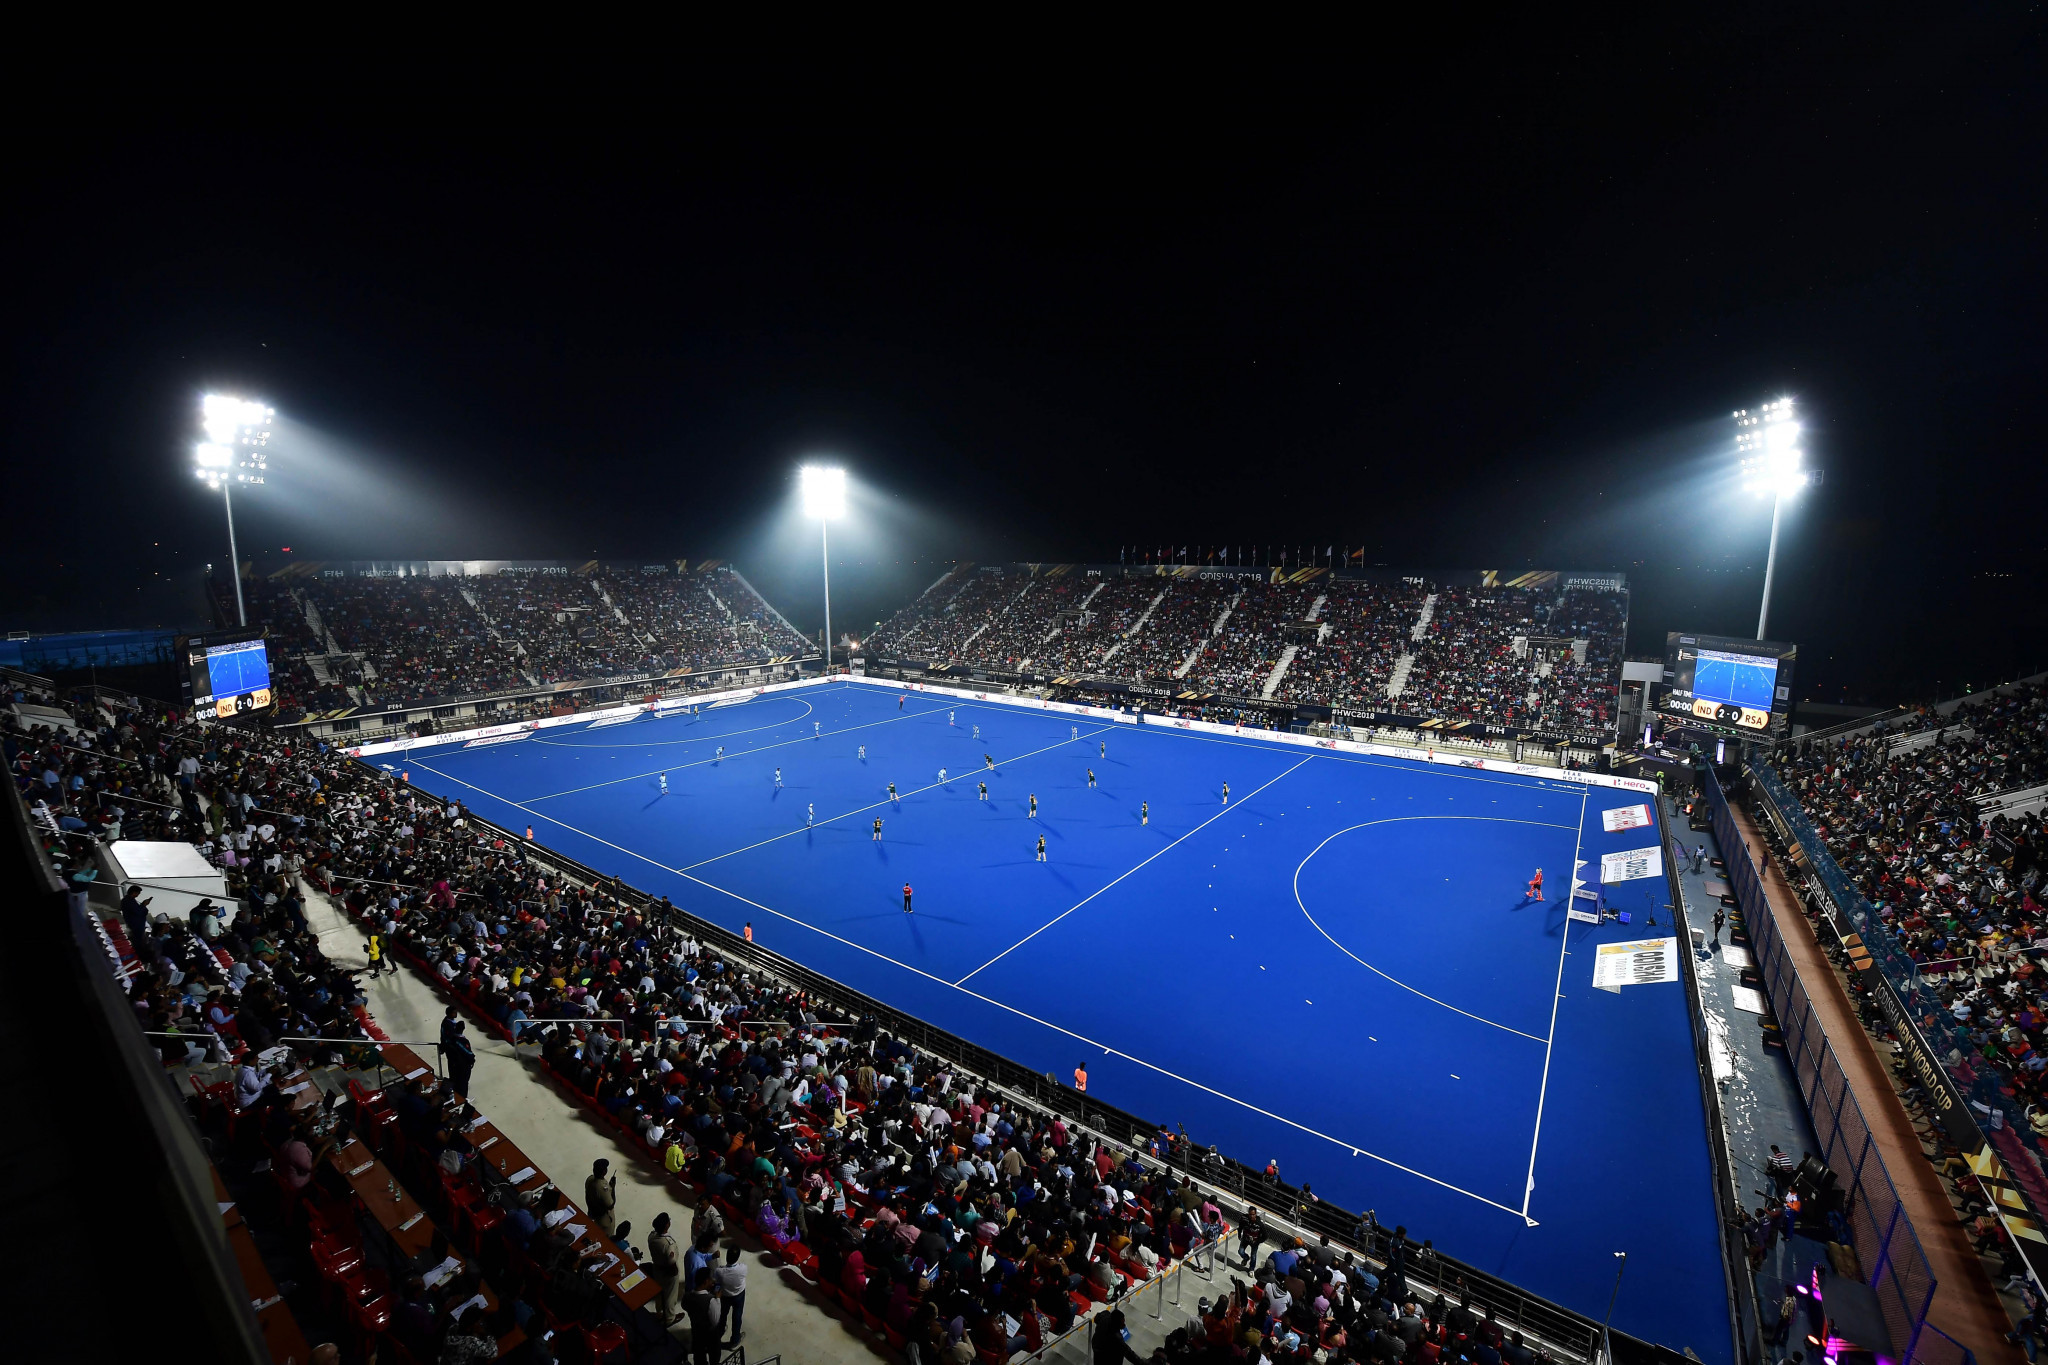 FIH confirm India has guaranteed all countries can enter country for Series Finals event following IOC decision